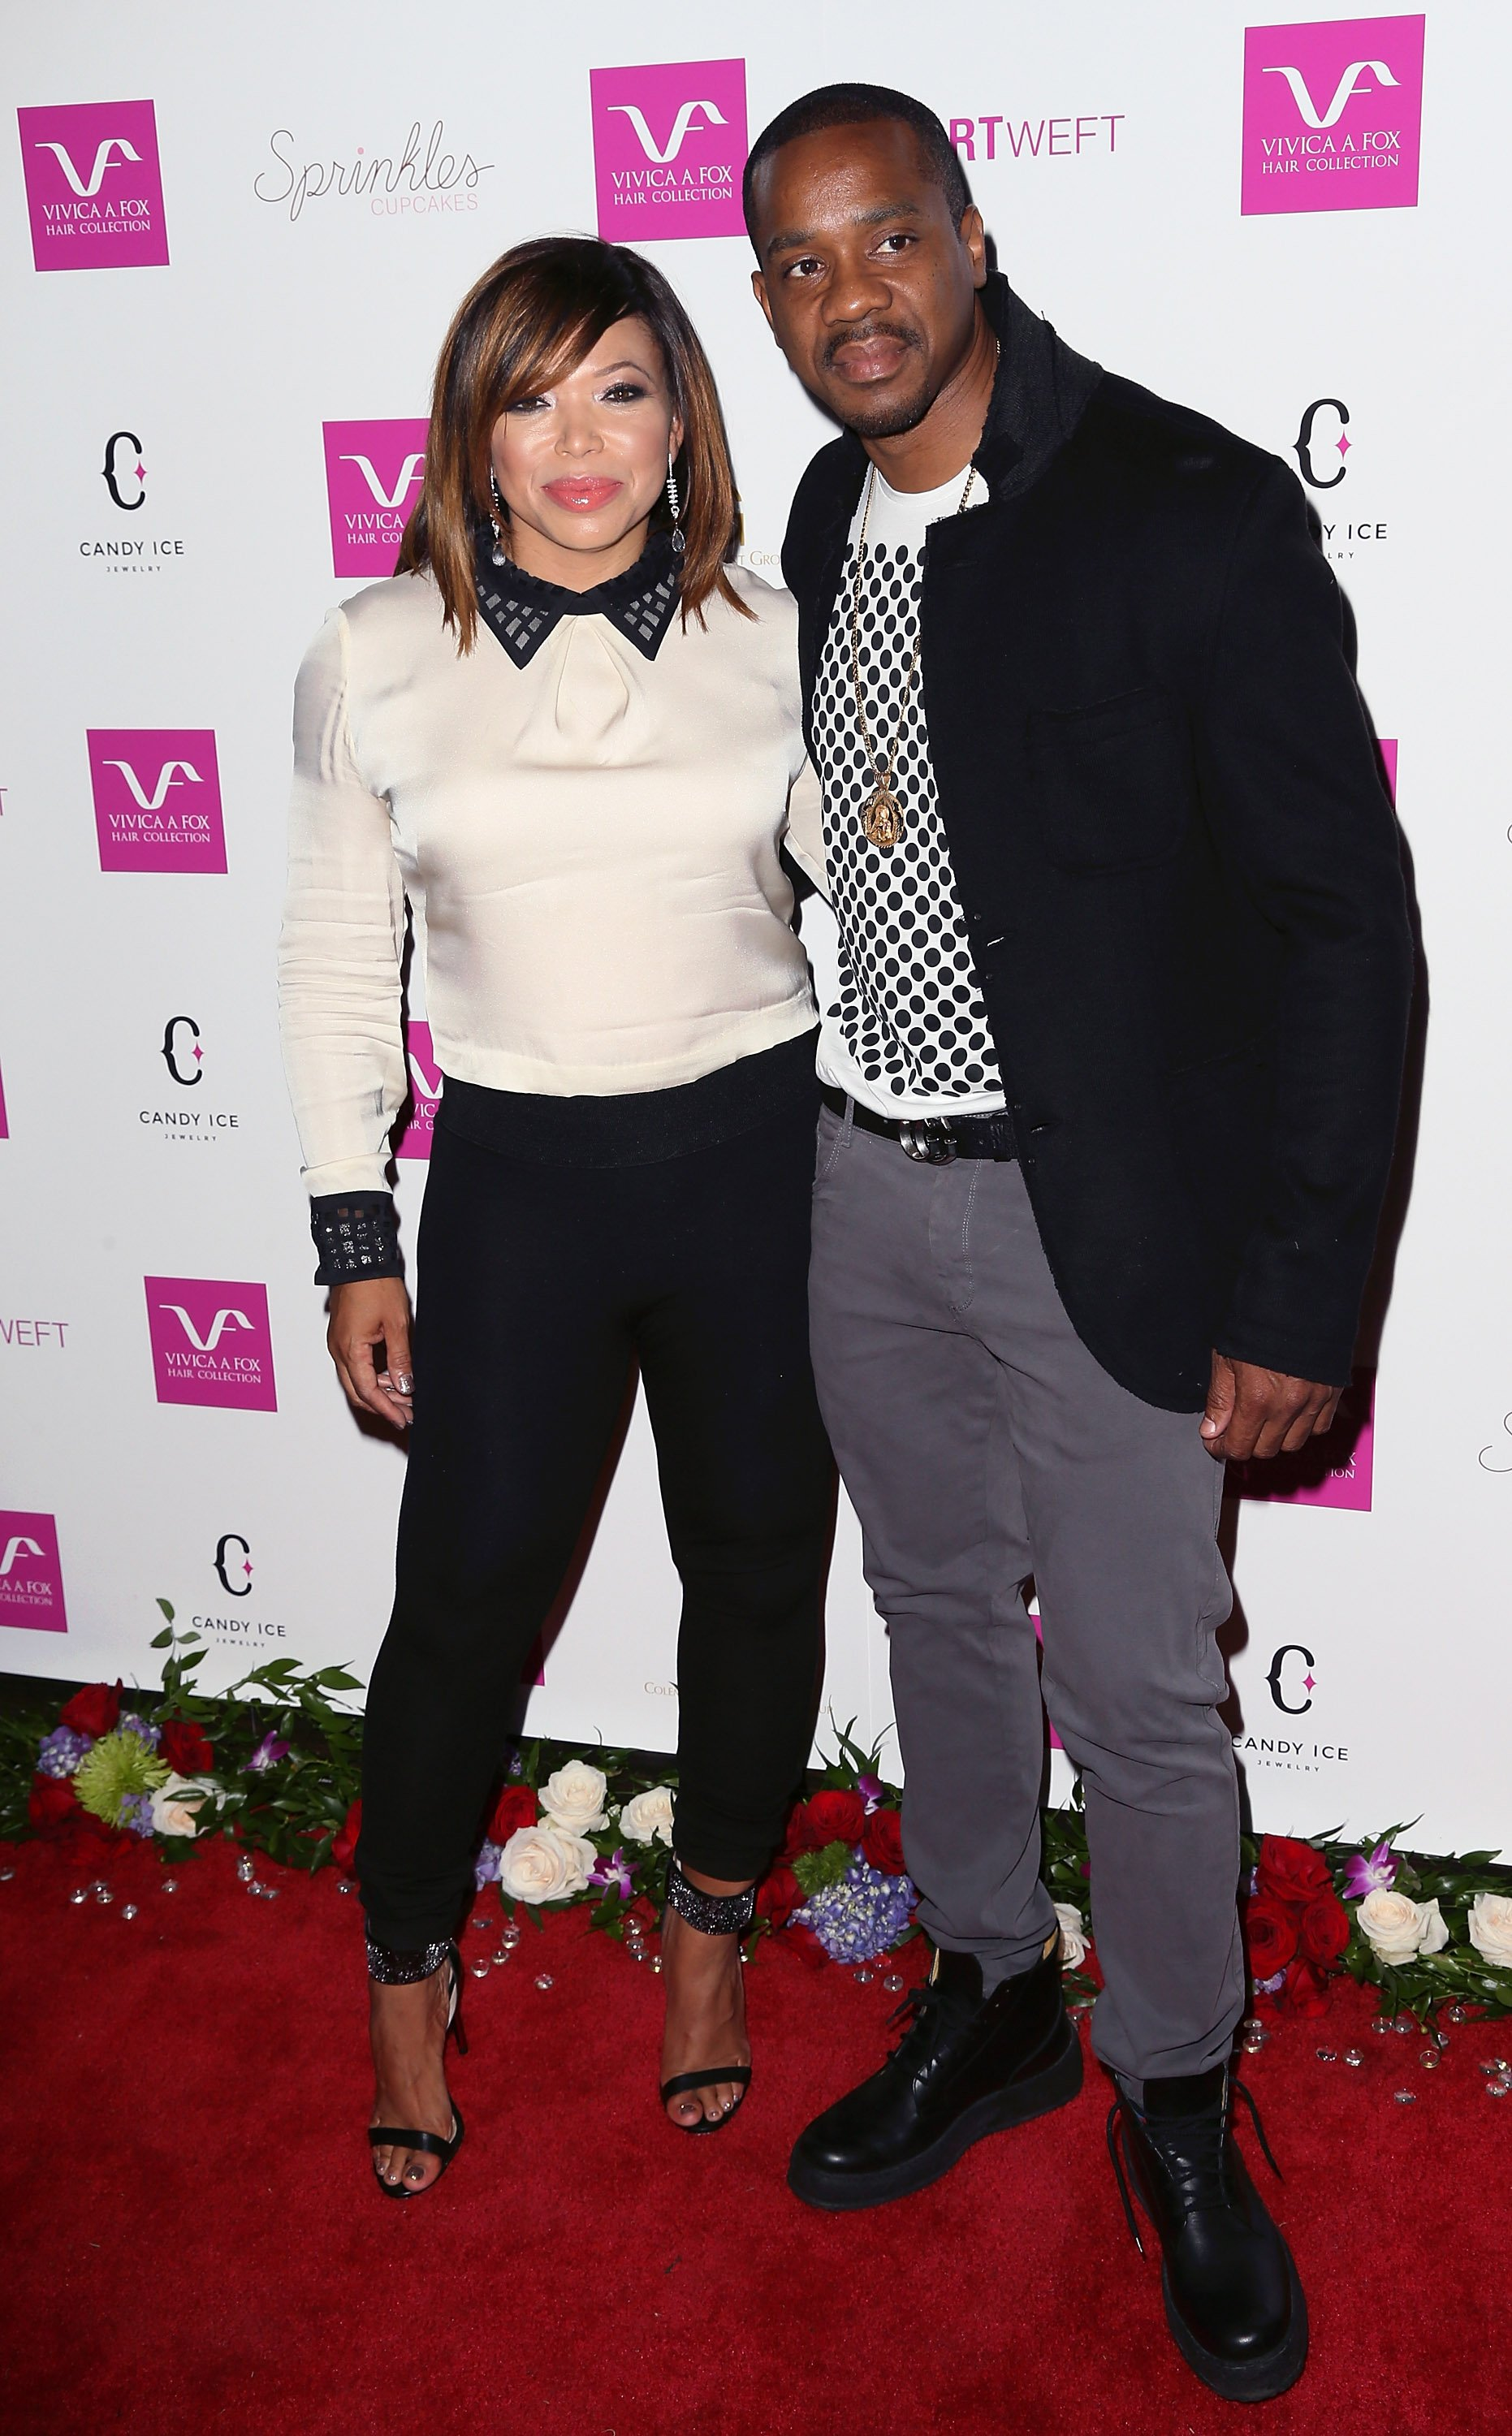 Tisha Campbell and Duane Martin attending the Vivica A. Fox 50th birthday celebration at Philippe Chow on August 2, 2014 in Beverly Hills, California. | Source: Getty